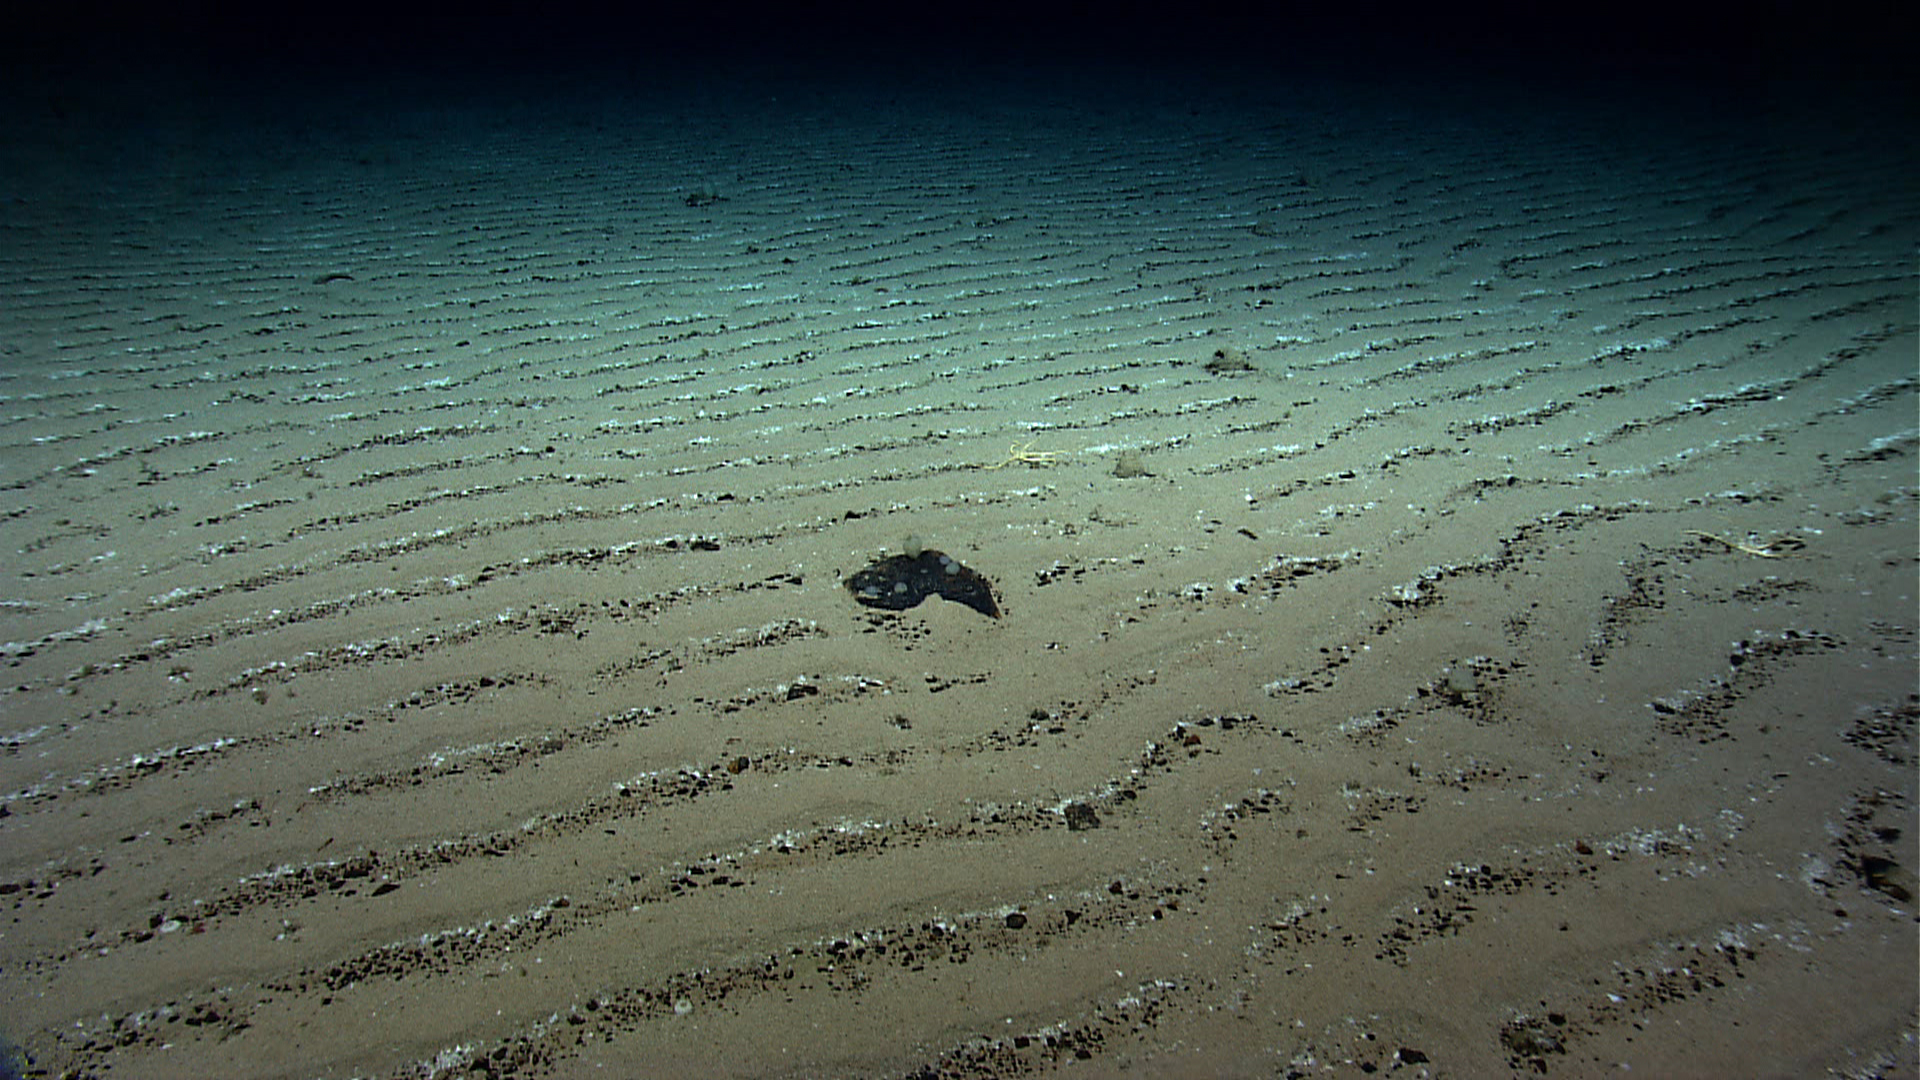 A picture of sediments on the seafloor.